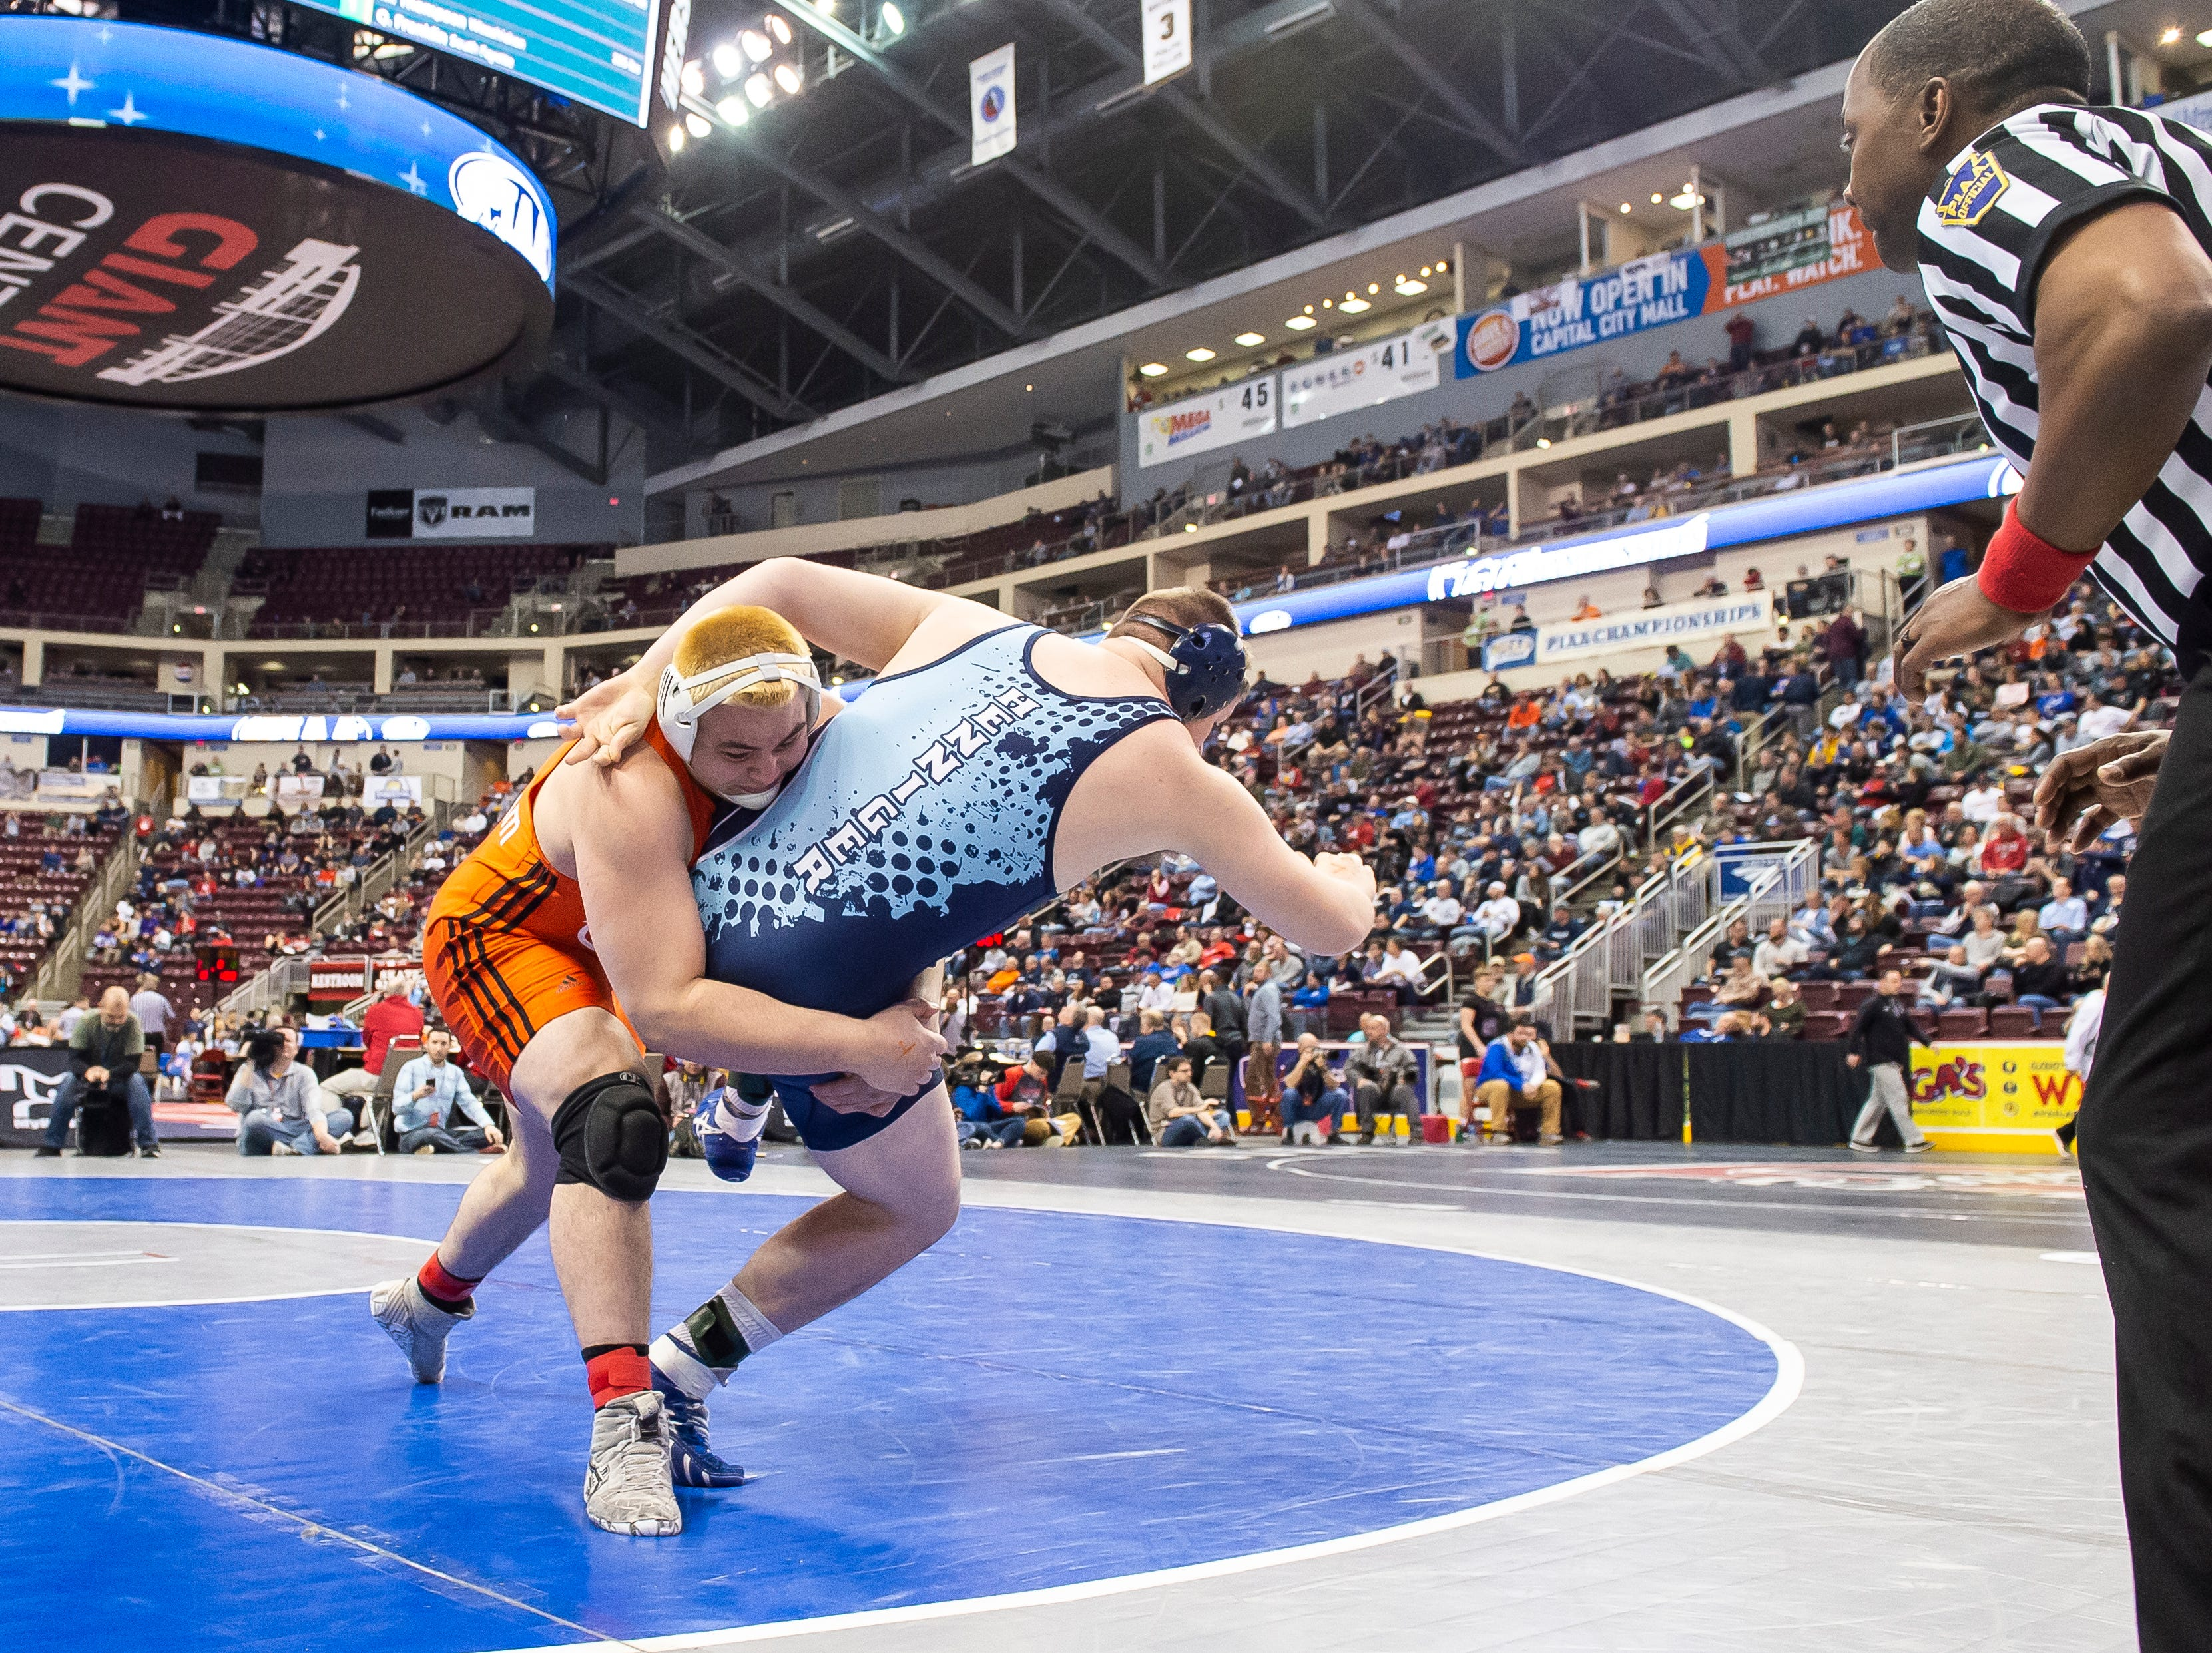 Central York's Michael Wolfgram wrestles Dallas' Shawn Henninger onto his back during the 3A 285-pound quarterfinal bout at the Giant Center in Hershey Friday, March 8, 2019. Wolfgram won by fall at 1:32.